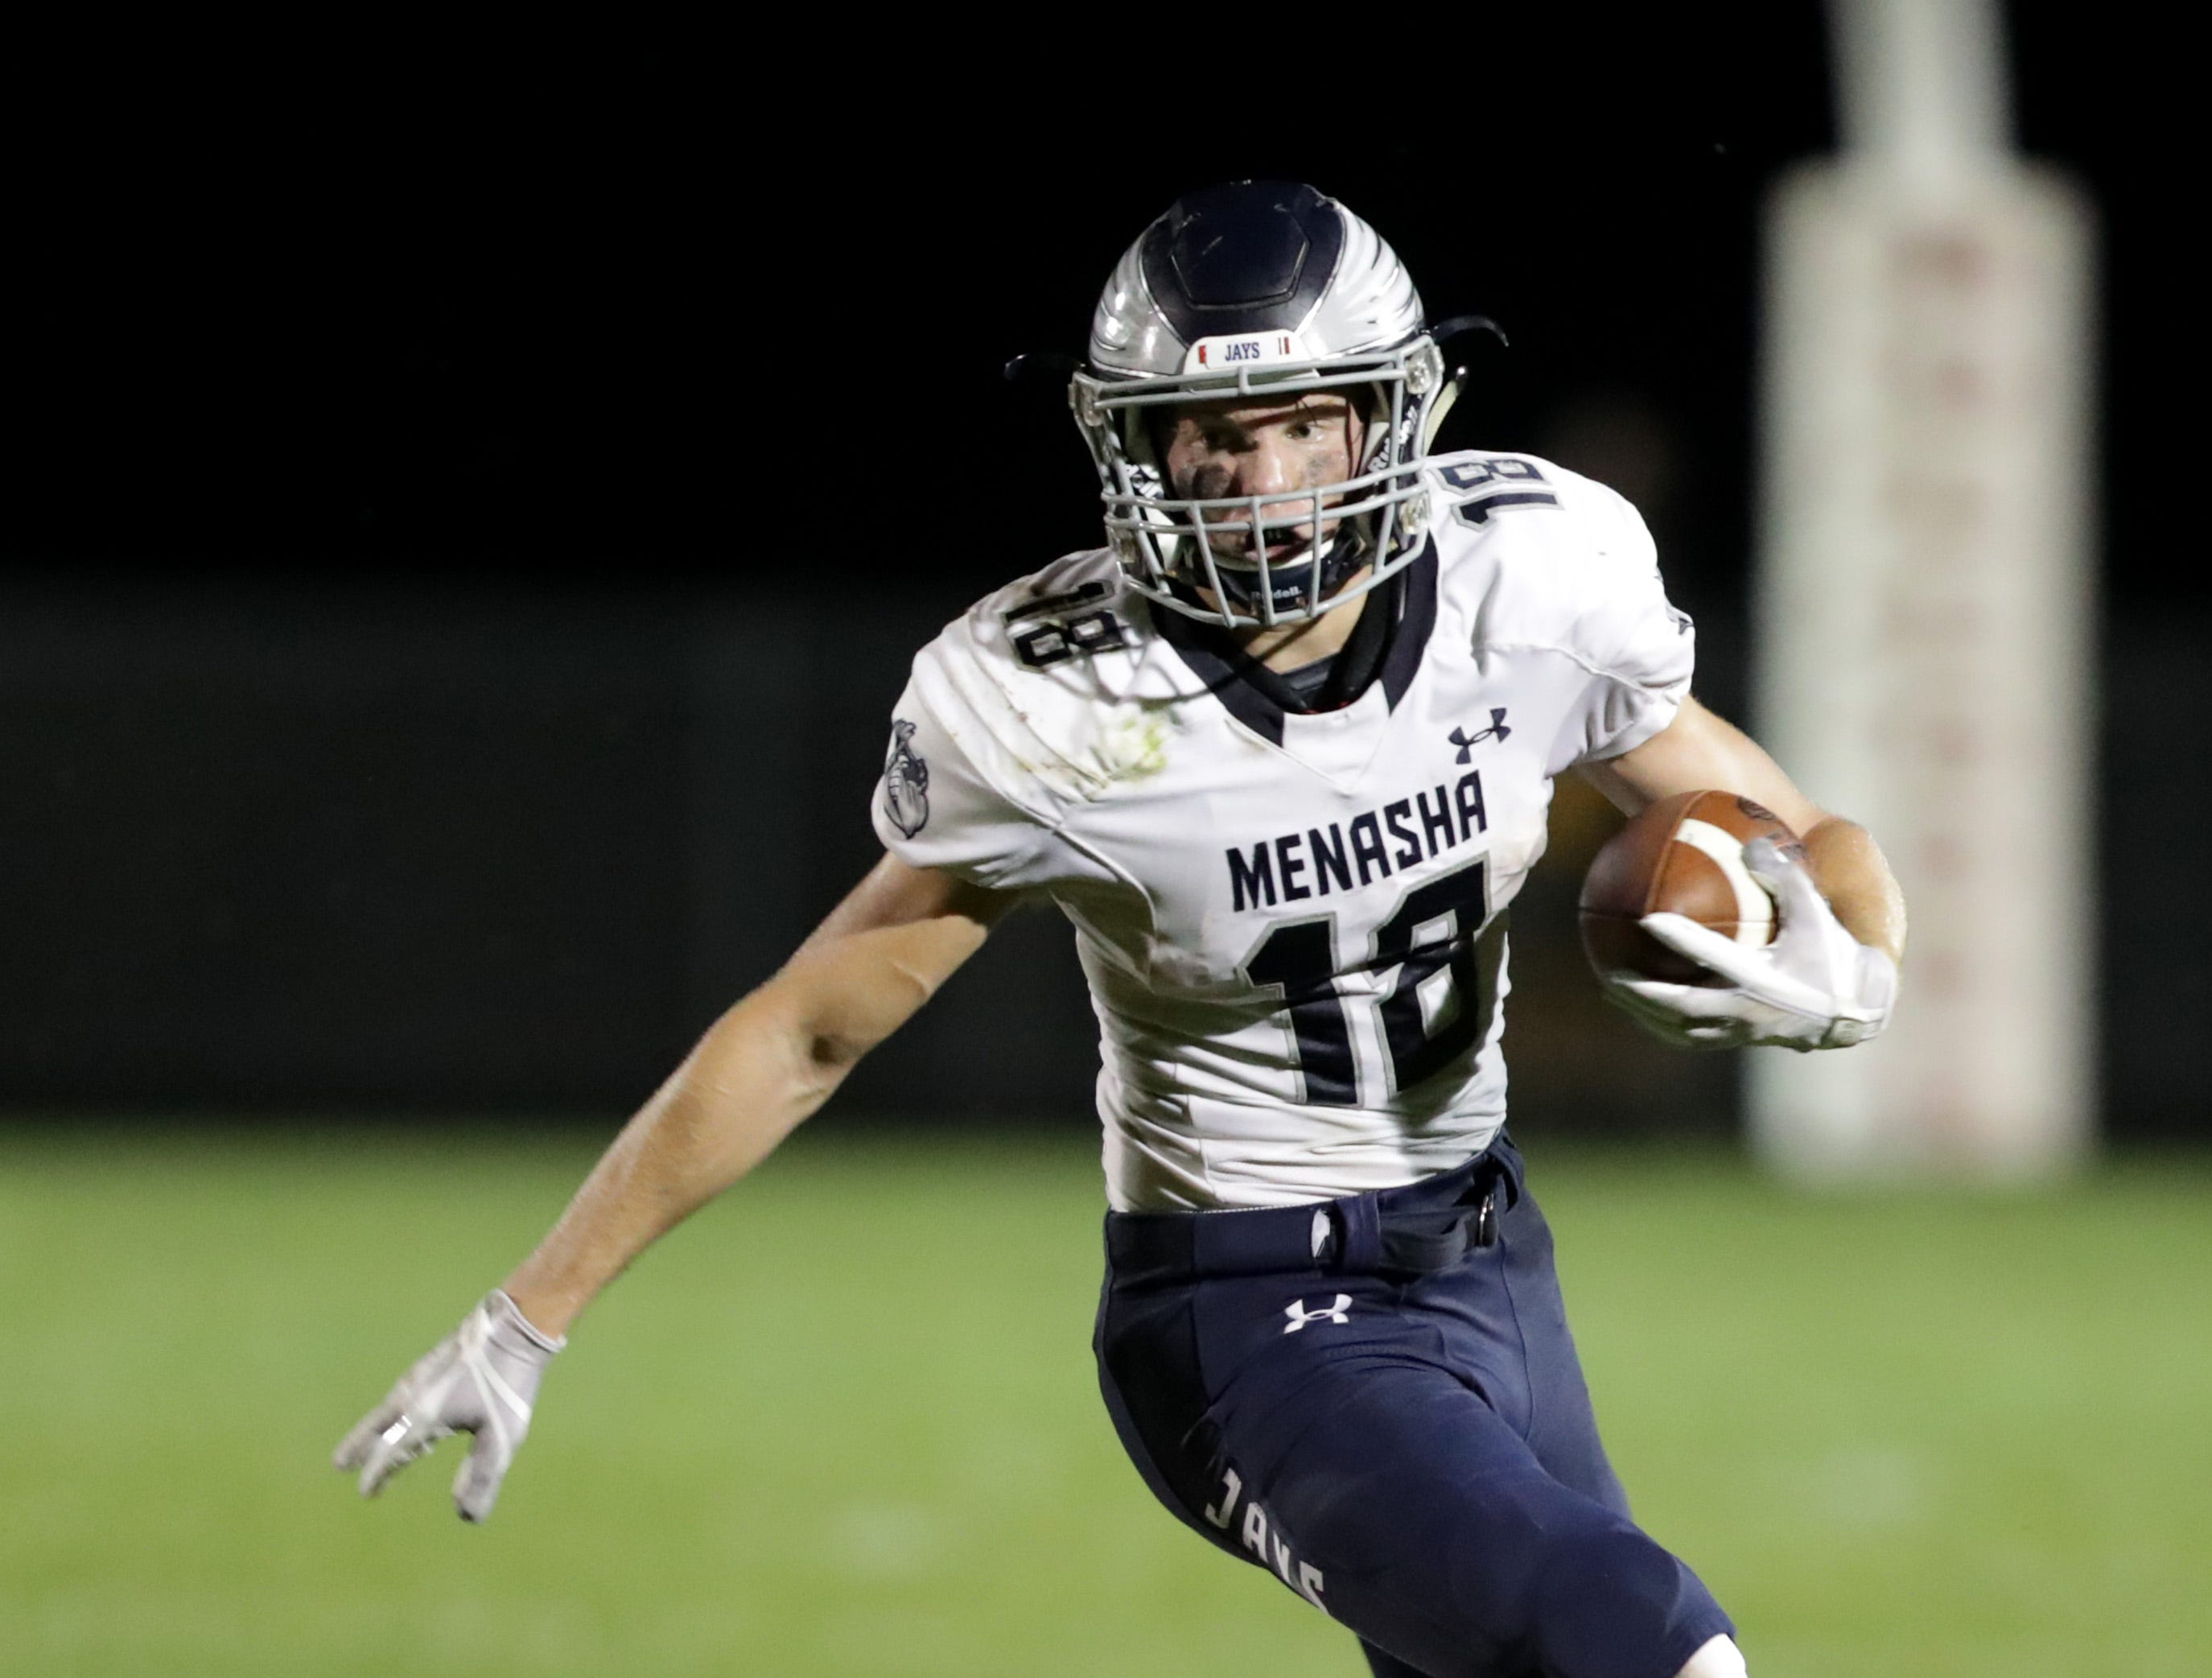 Menasha High School's #18 Riley Zirpel against New London High School's #24 Sean Cortright during their football game on Friday, September 14, 2018, New London, Wis. Menasha defeated the Bulldogs 34 to 28.